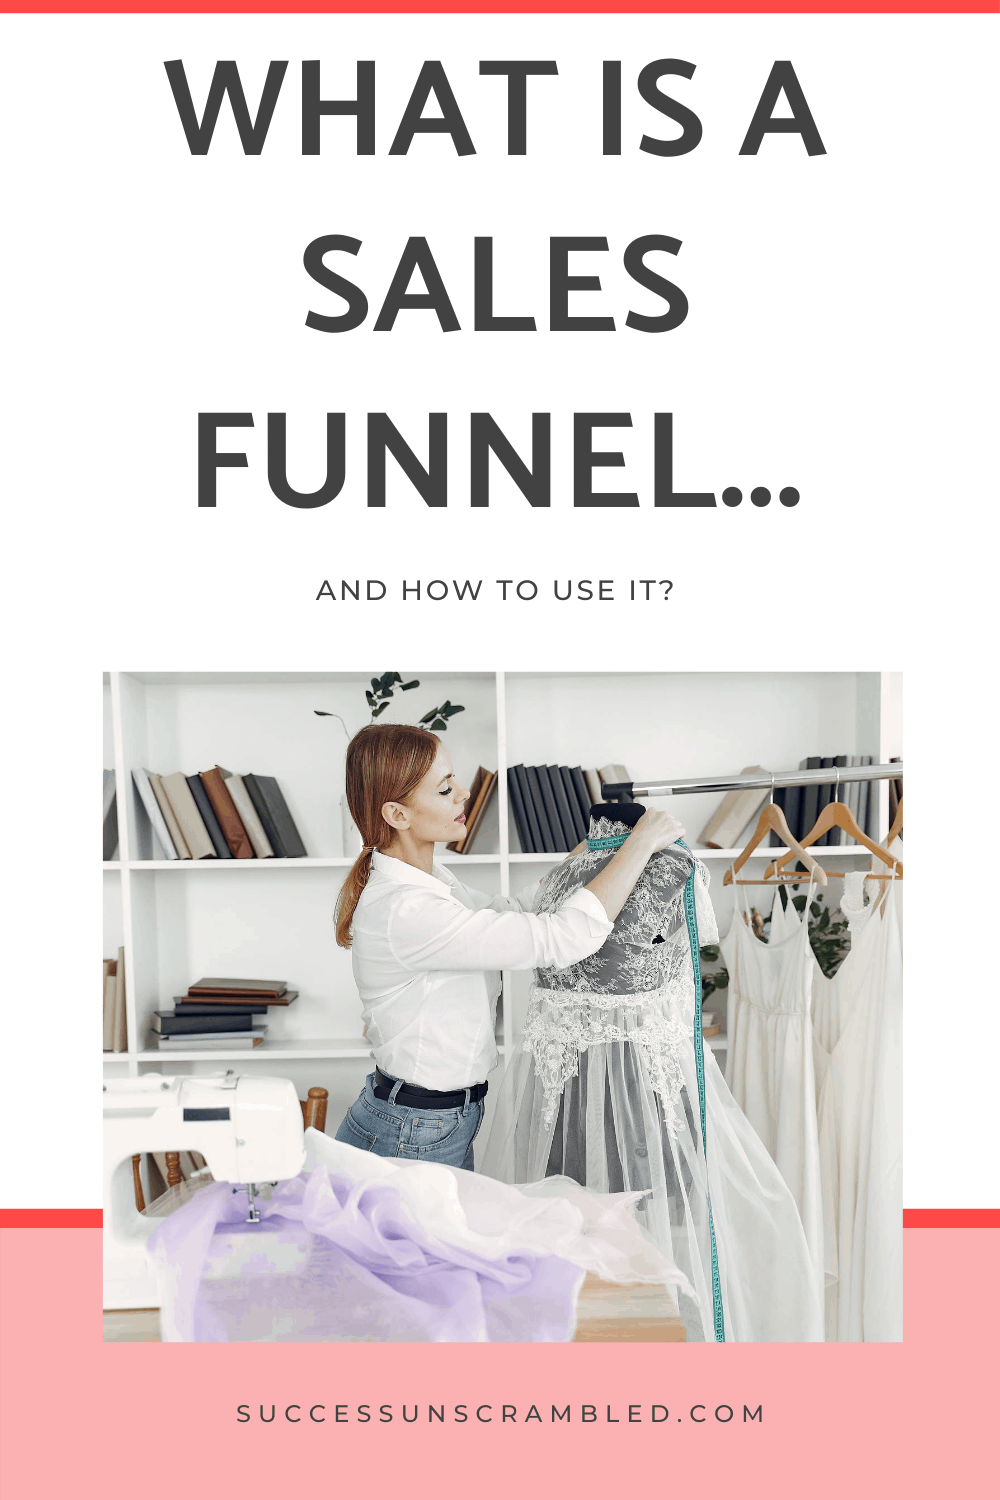 What is a Sales Funnel and how to use it